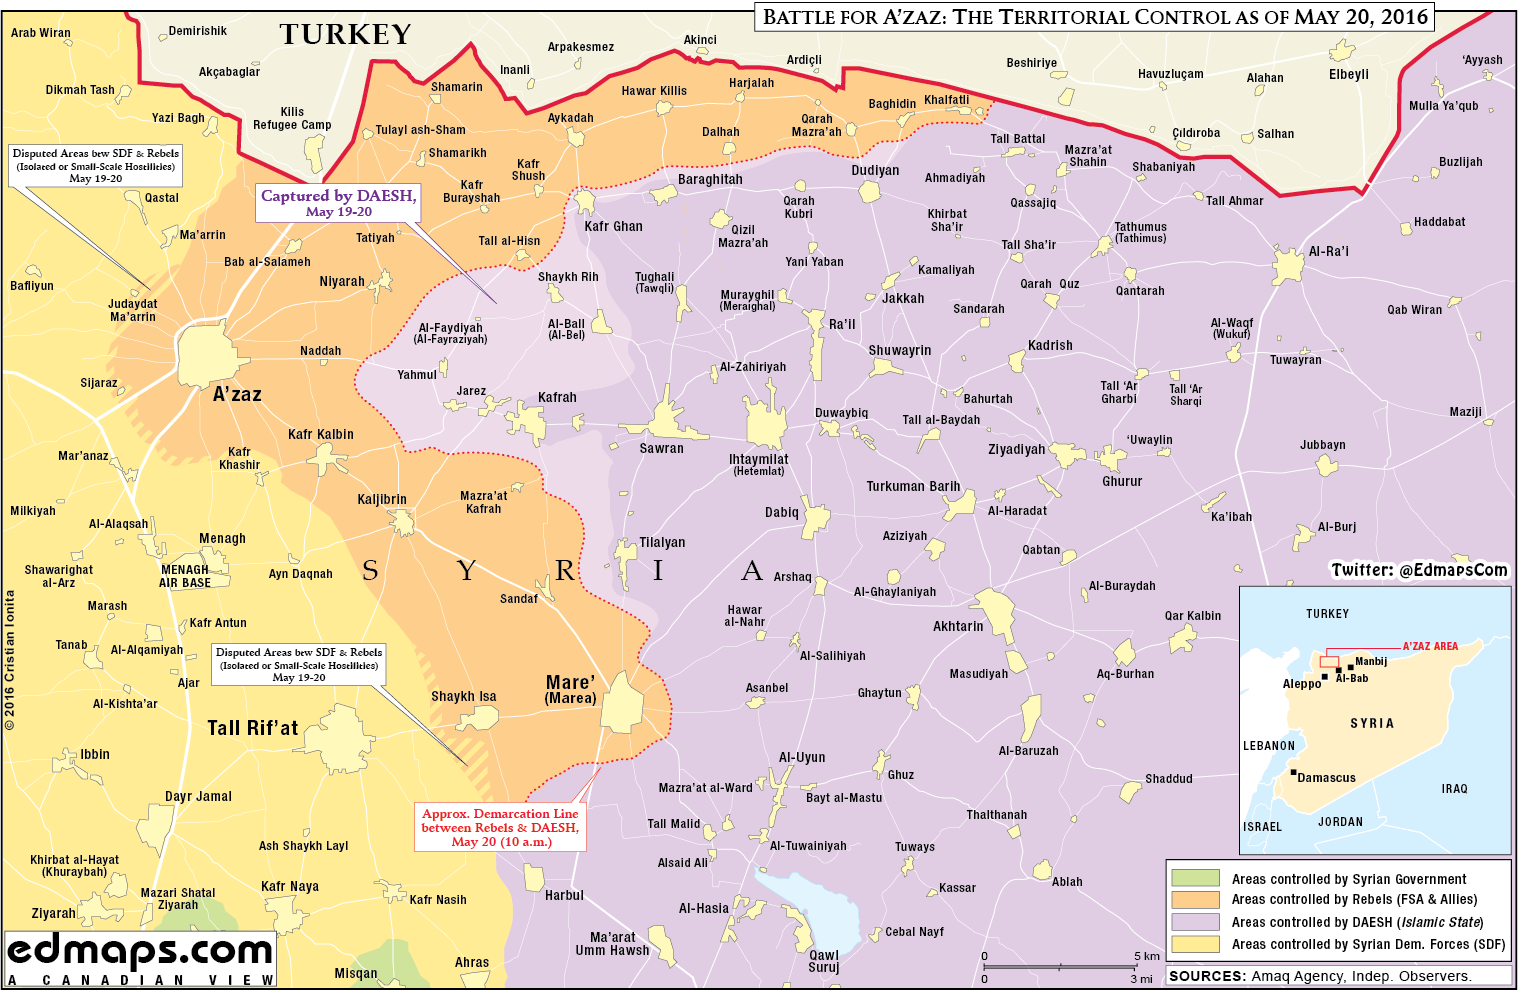 Military Situation in Norhern Aleppo, Syria on May 20